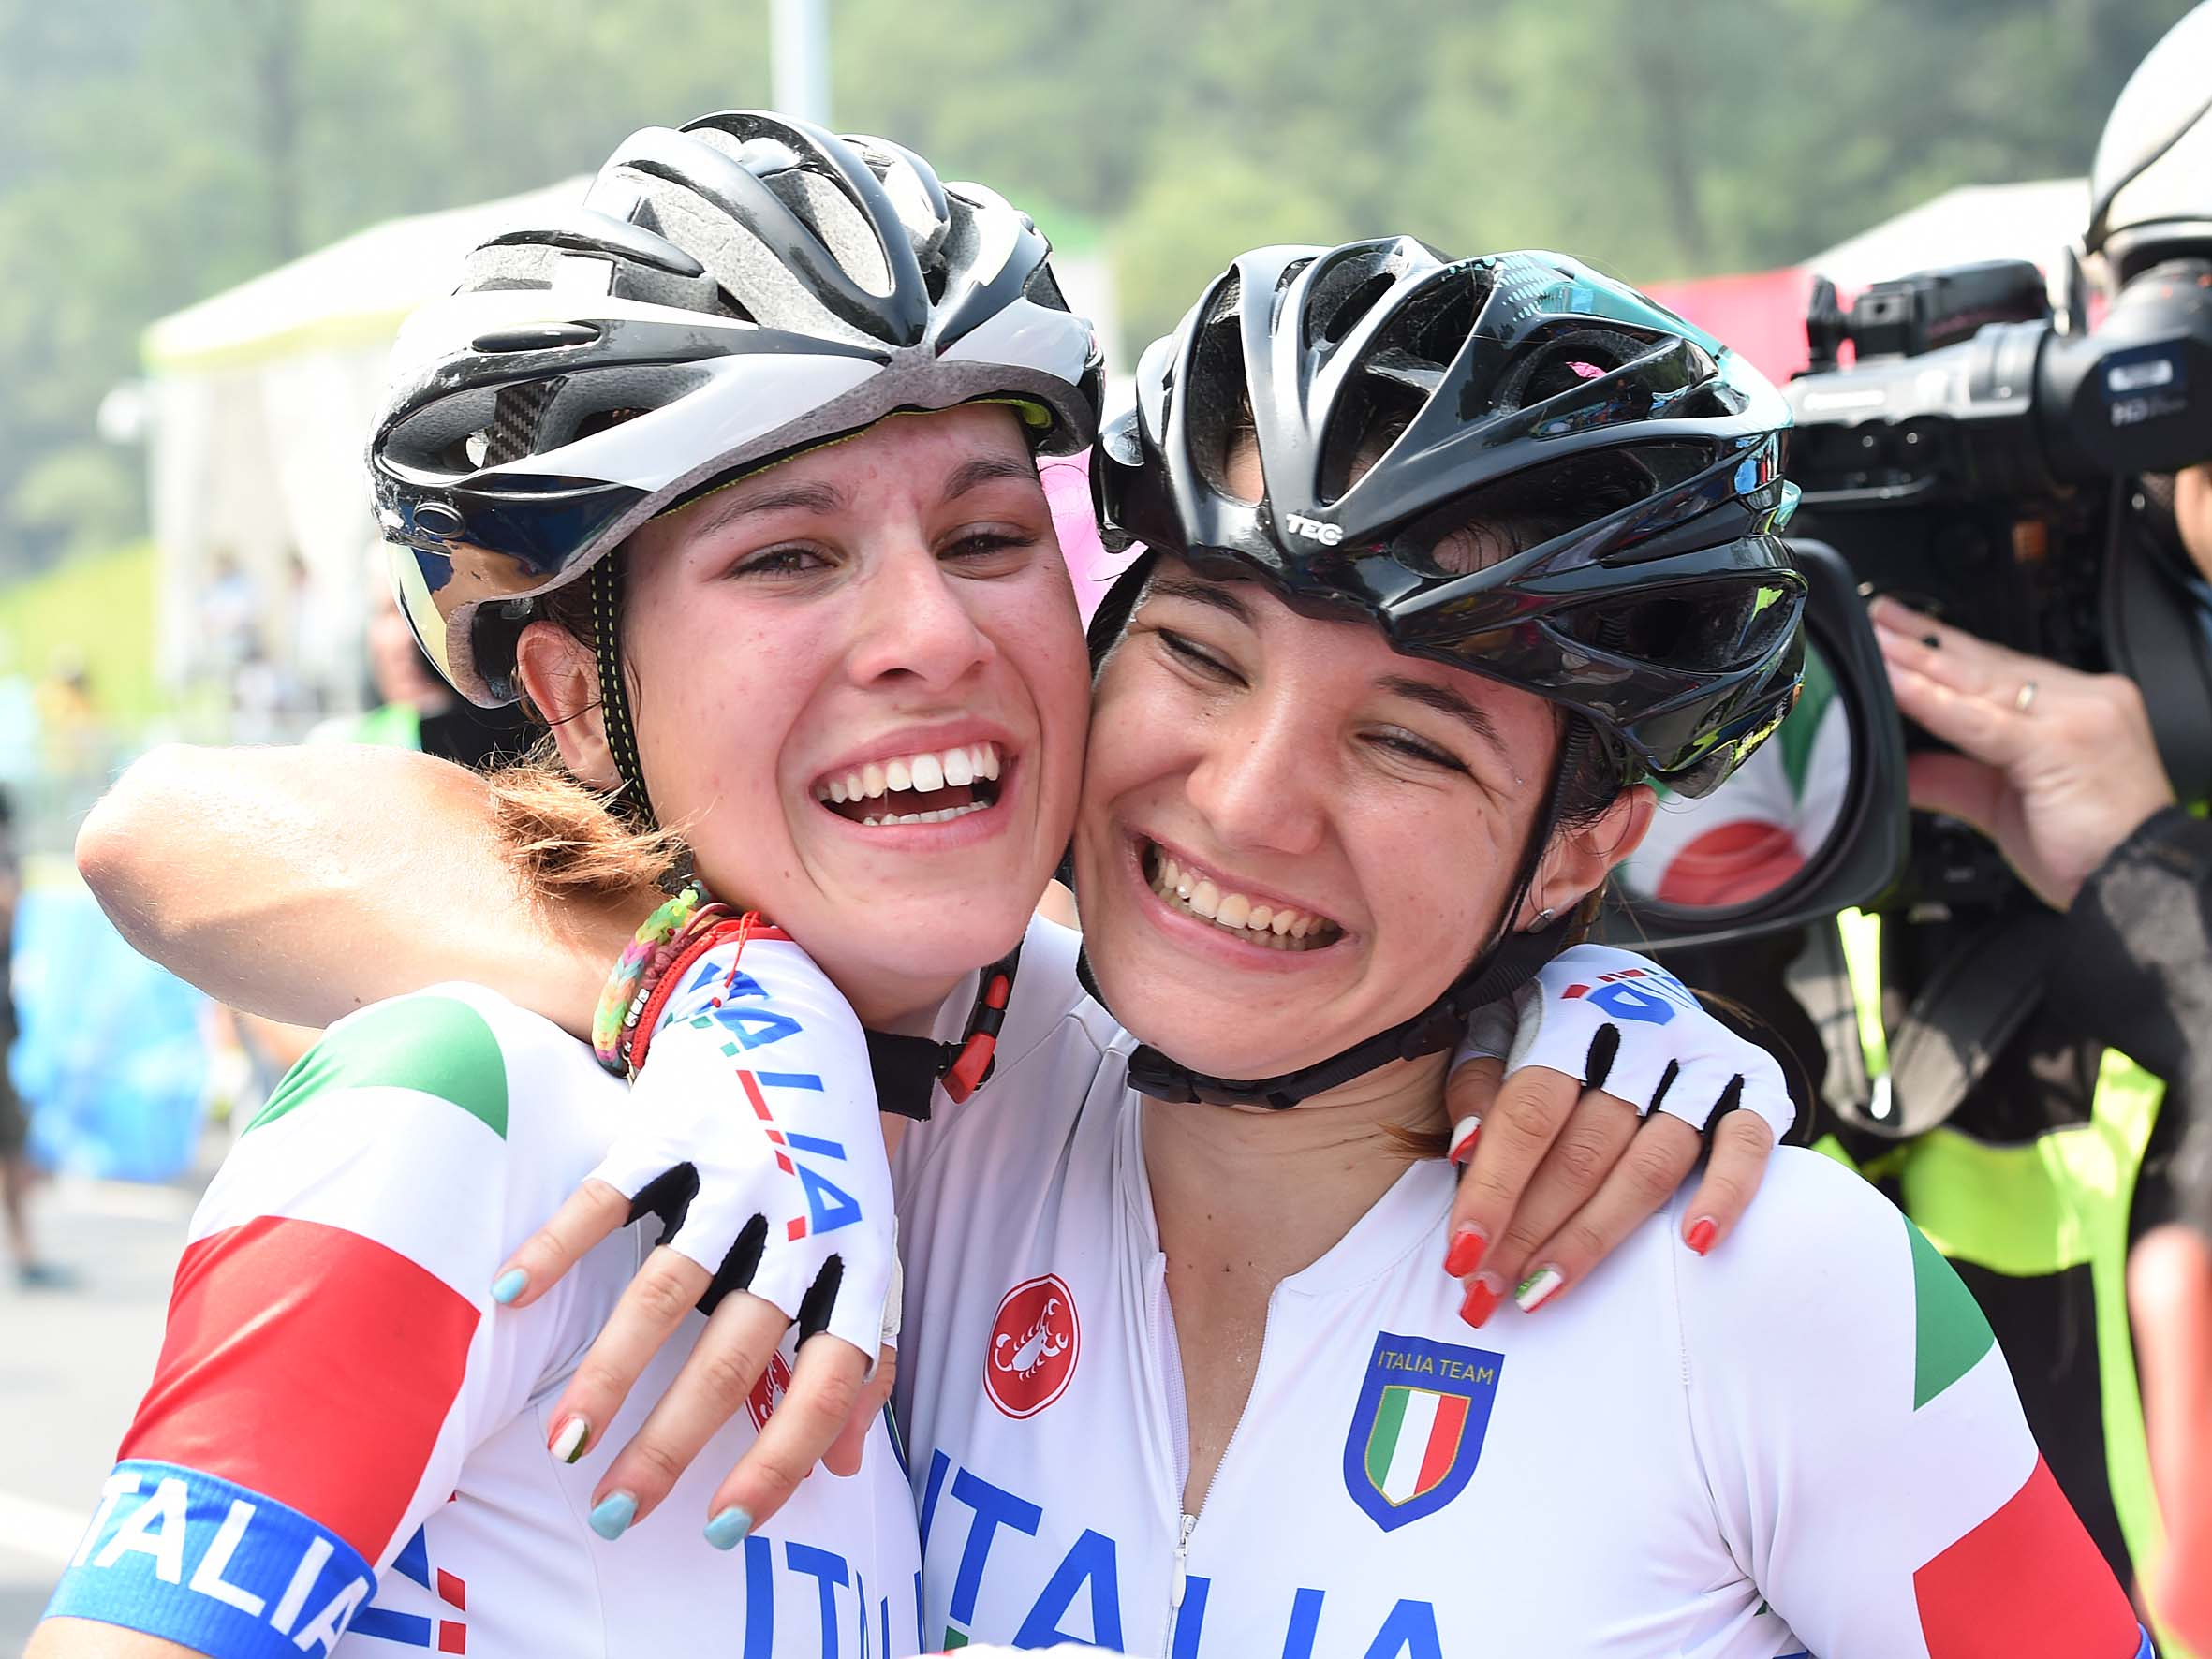 Ciclismo donne 13